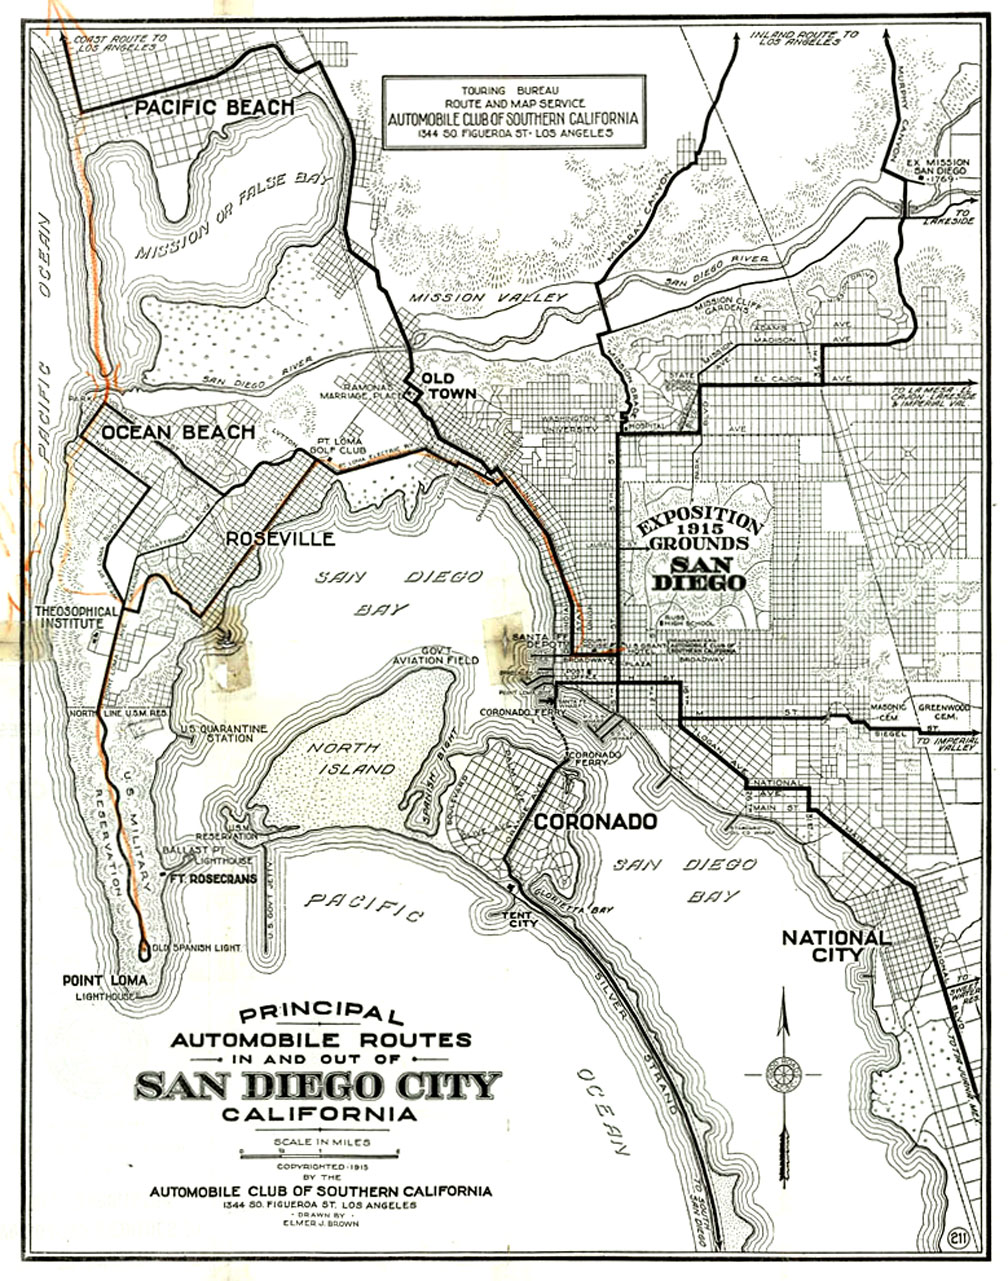 Vintage San Diego Map.Automobile Club Of Southern California Maps Of San Diego